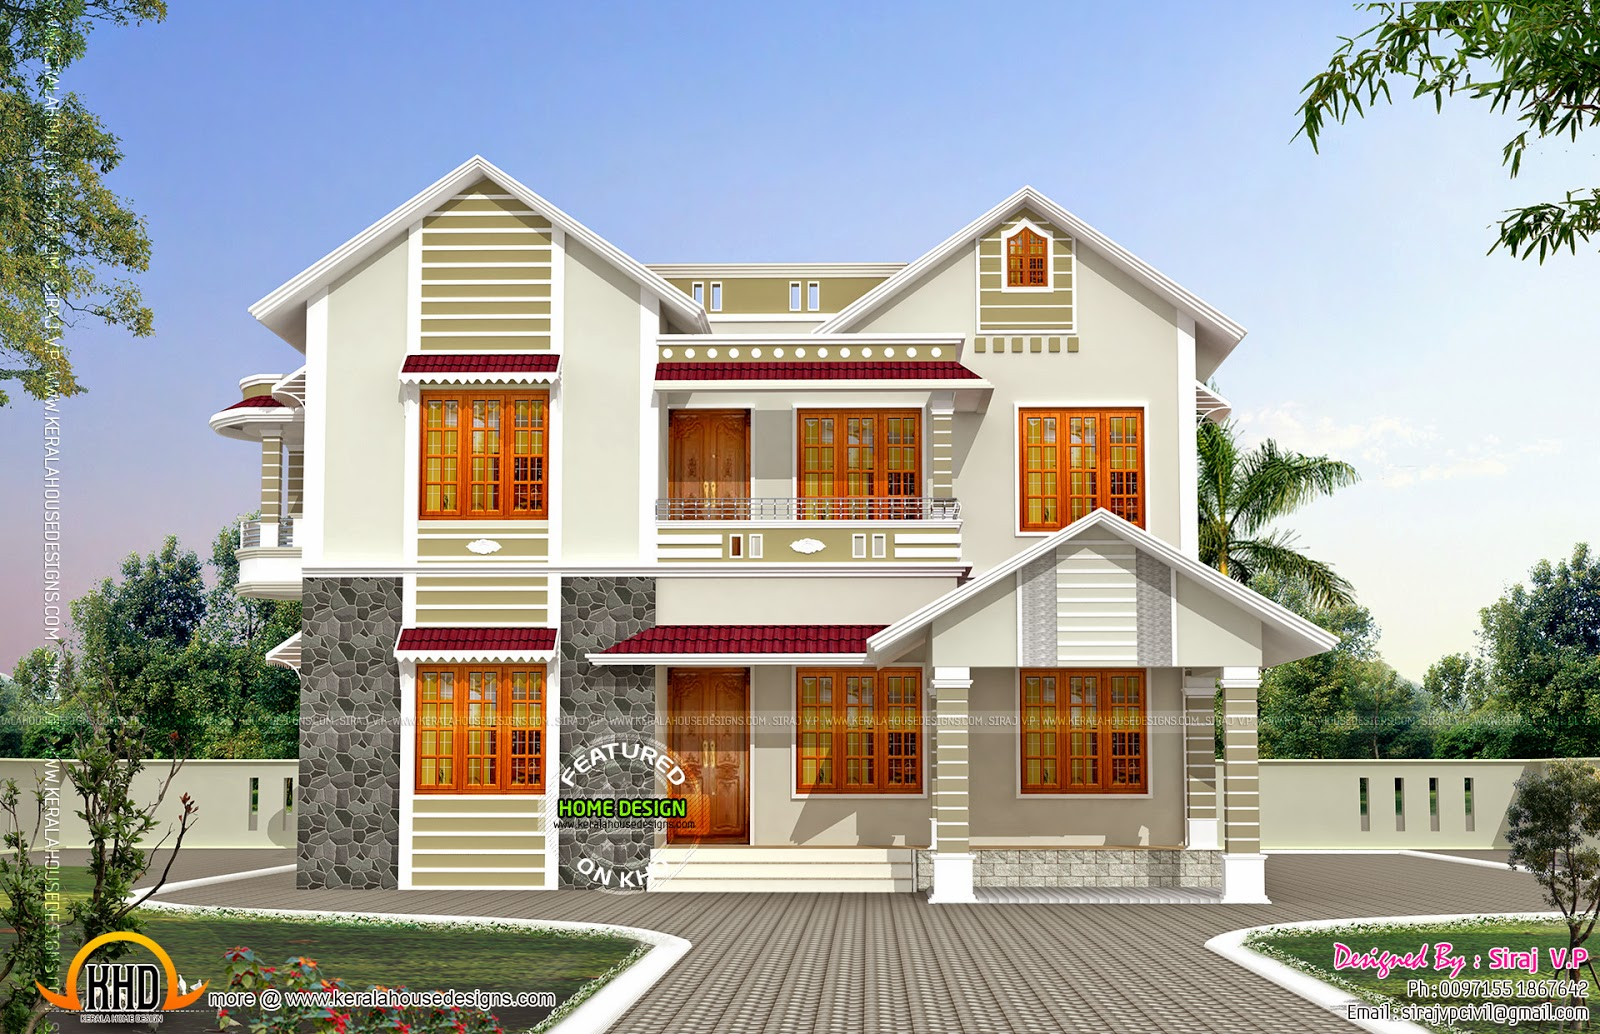 10 home design front view images modern house design for View house plans online